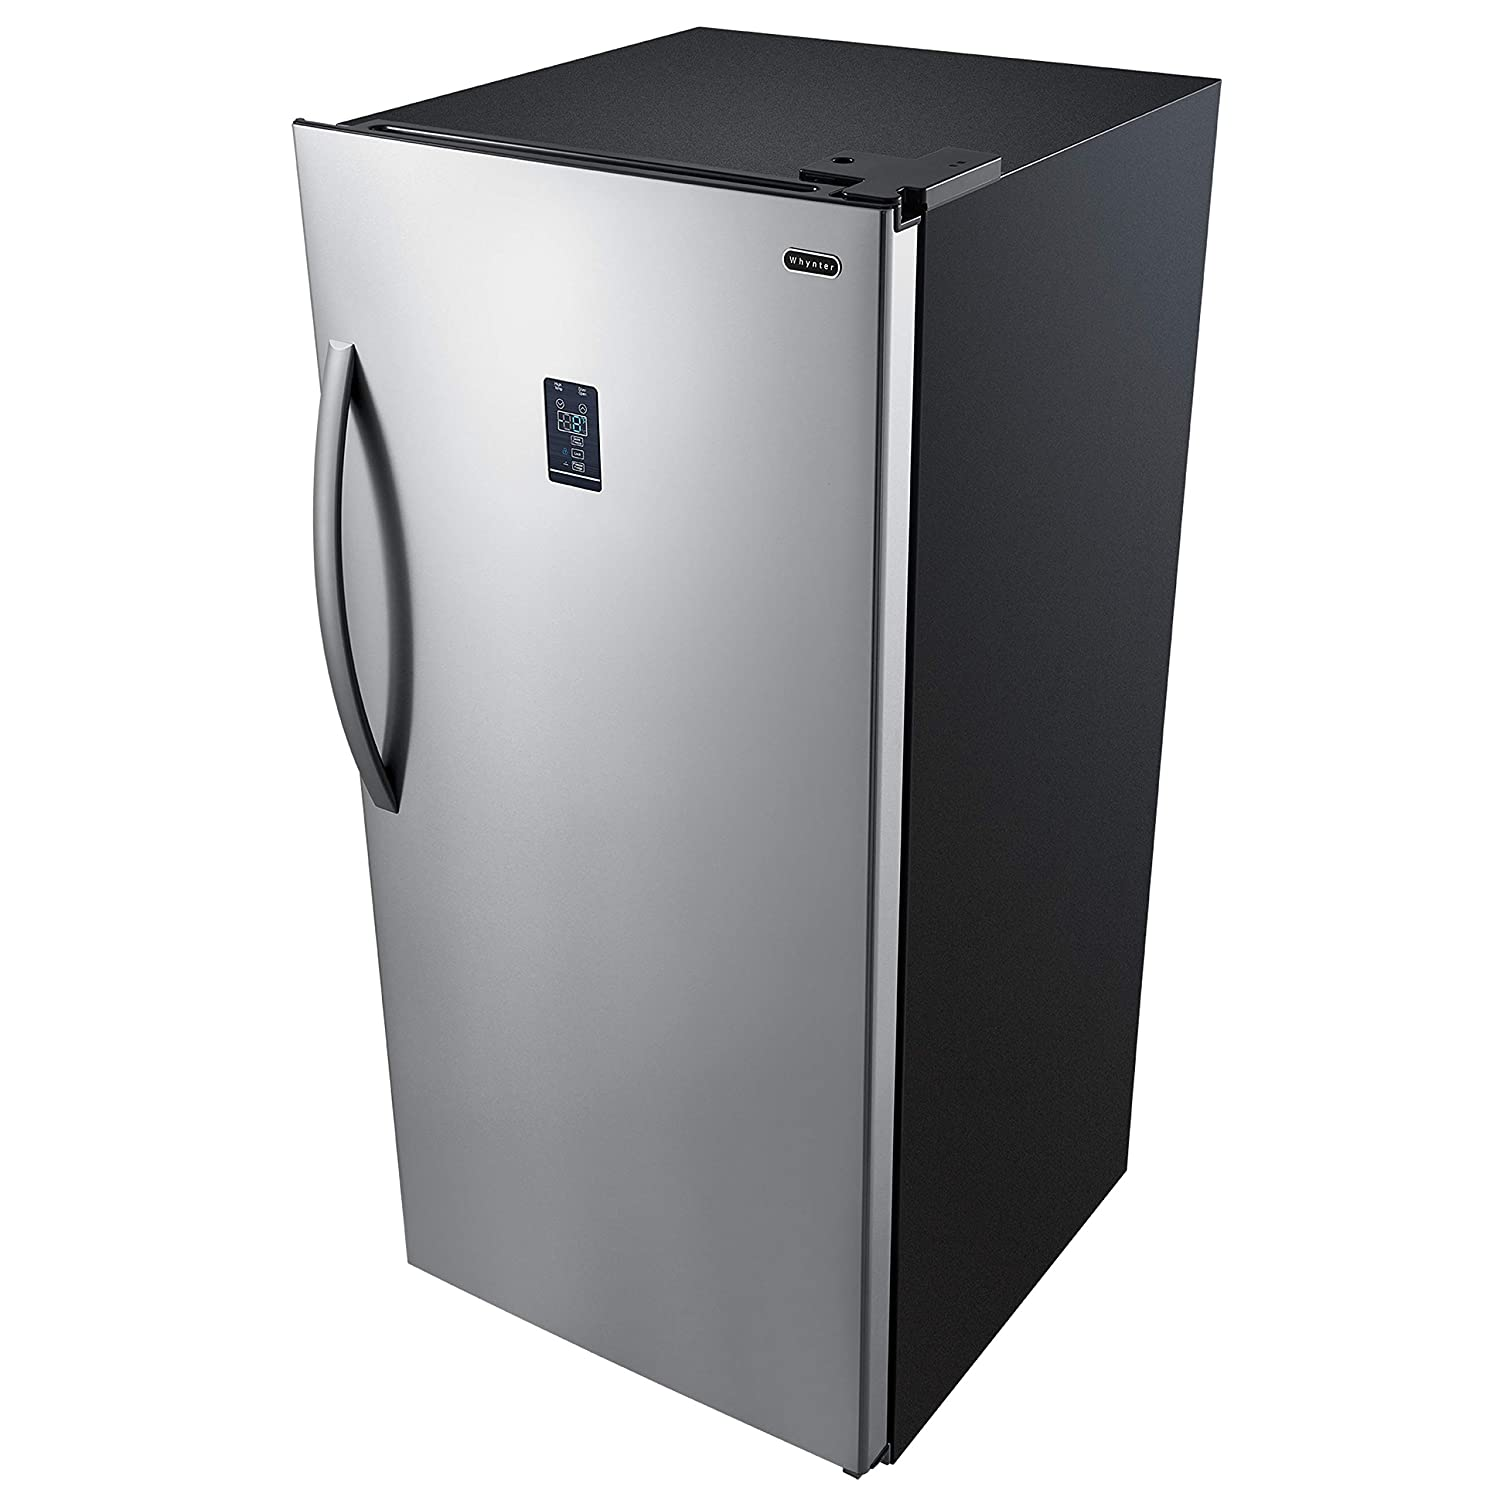 Whynter UDF-139SS 13.8 cu.ft. Energy Star Digital Upright Convertible Deep Stainless Steel Freezer Refrigerator, One Size,